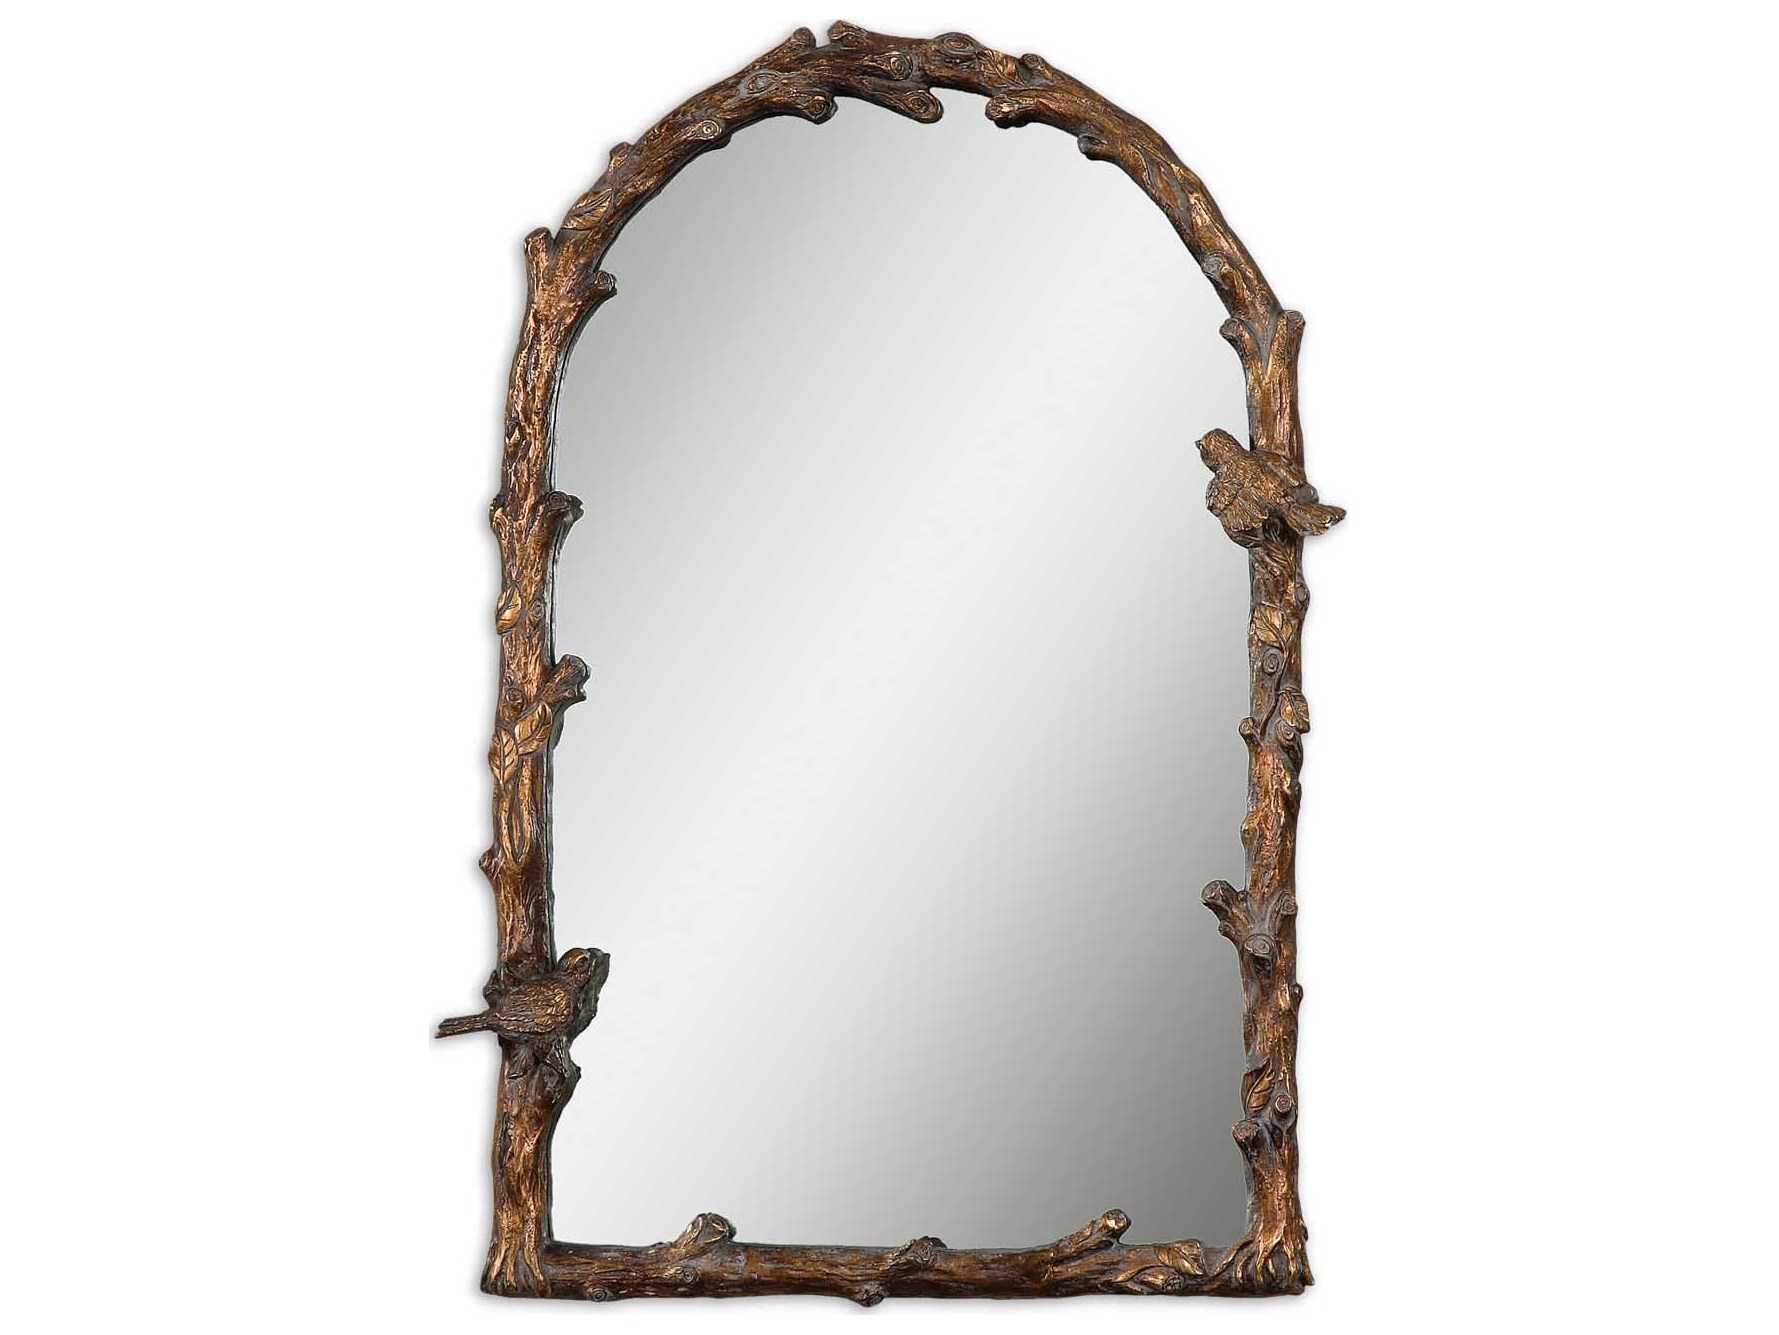 Uttermost Paza 26 X 37 Antique Gold Arch Wall Mirror With Regard To Gold Arch Wall Mirrors (View 29 of 30)